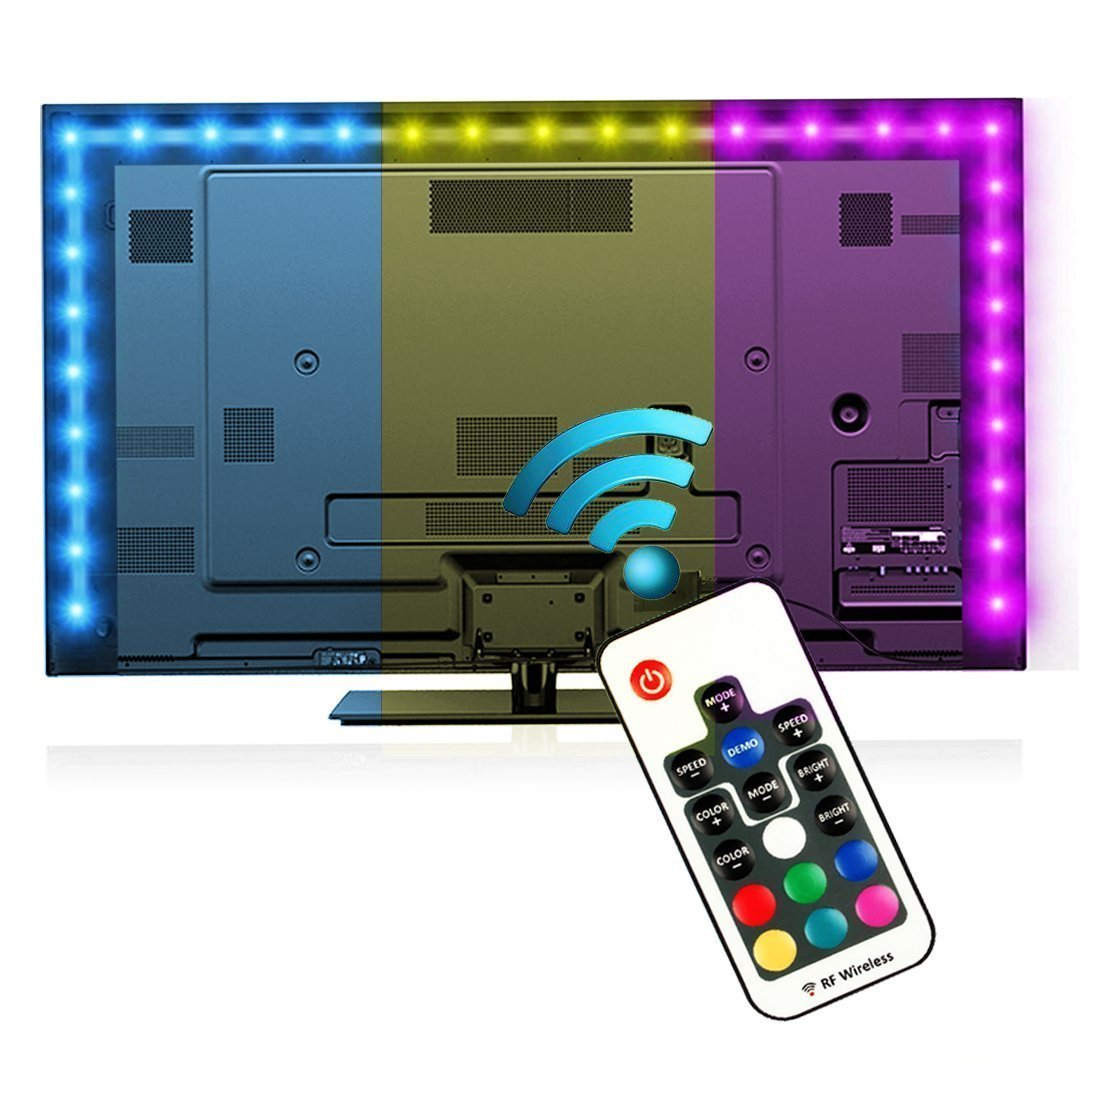 Bias Lighting for HDTV (78.7in / 2m) with Remote Control - EveShine Multi-Color RGB TV LED Backlight Strip Lighting Kit for Flat Screen TV LCD, Desktop Monitors - Fits Any TV Size Up to 60'' - Black by EveShine (Image #1)